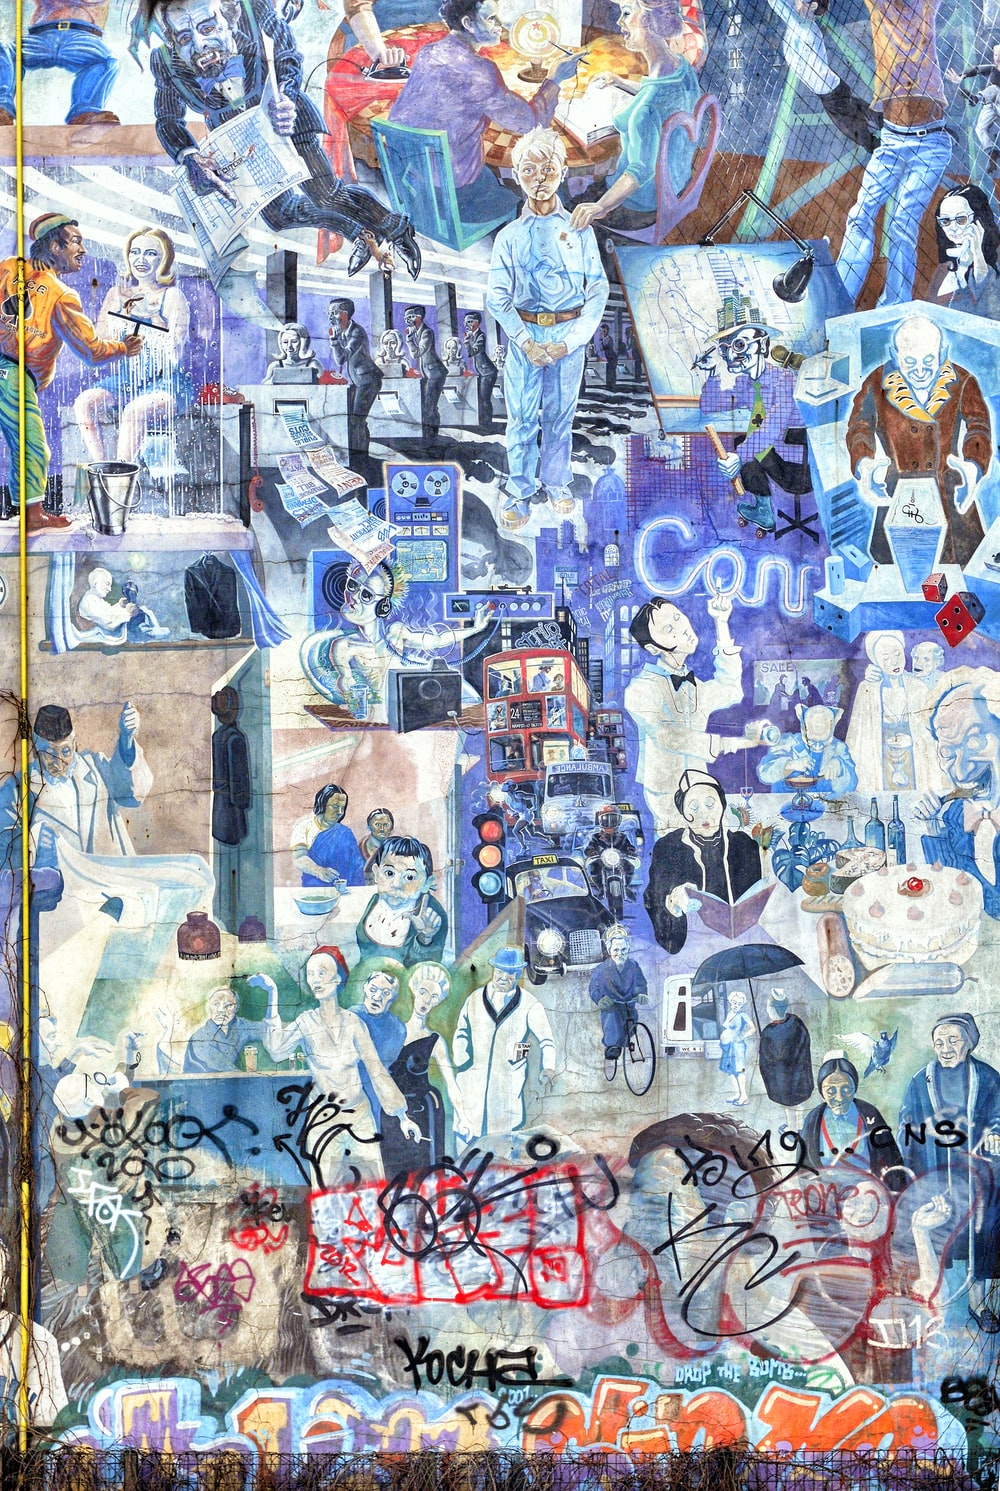 wall with collage graffiti painting